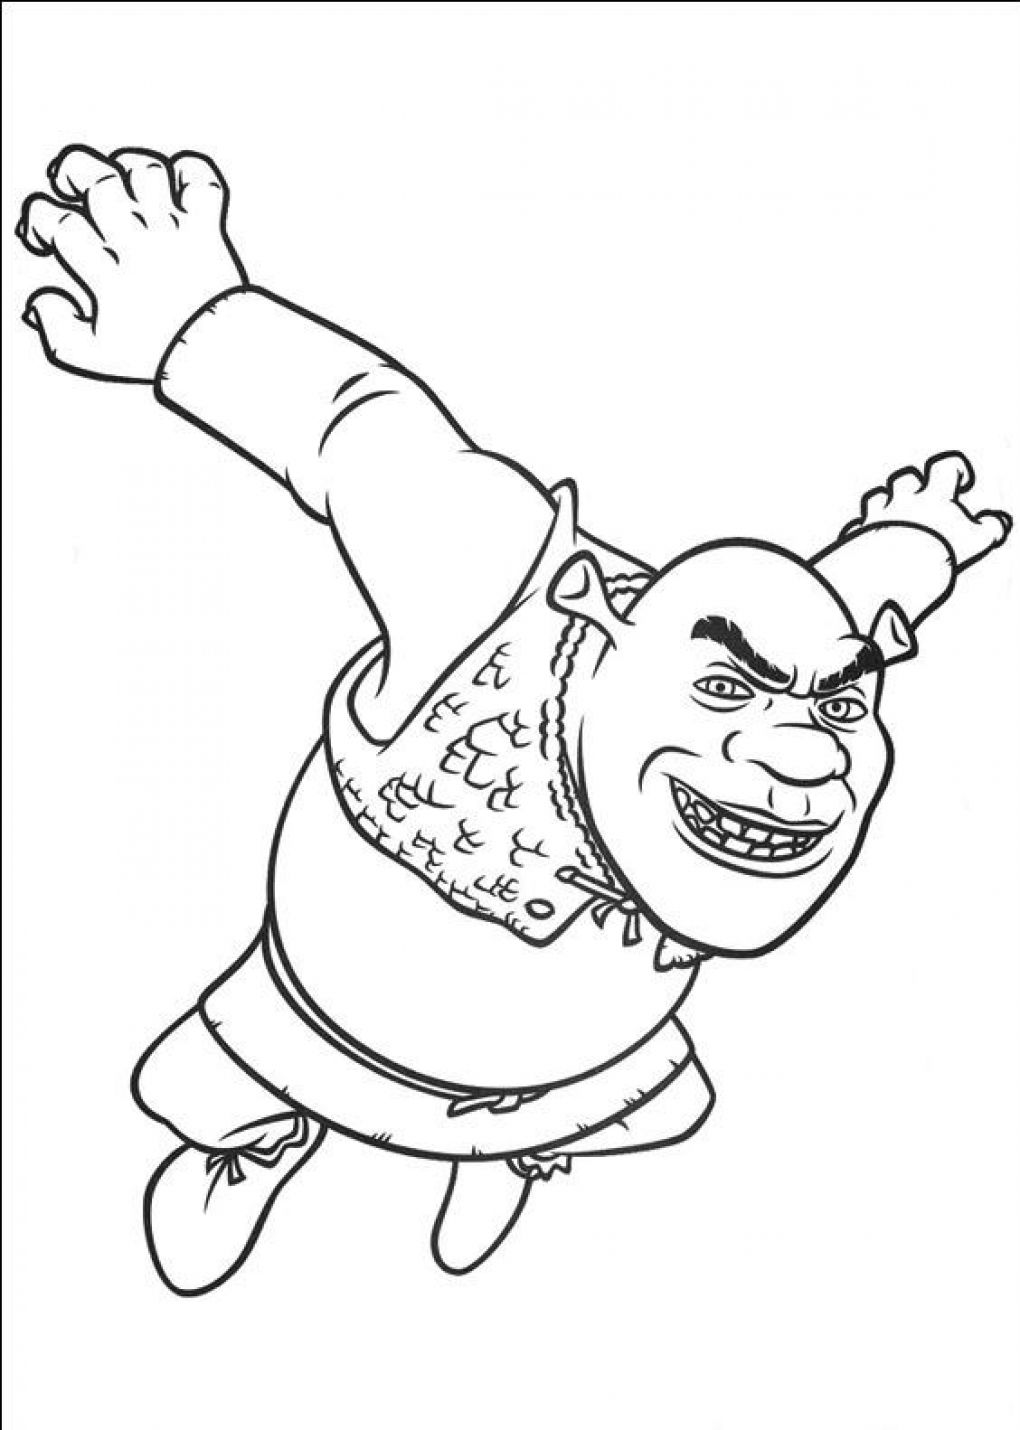 Shrek Coloring Pages | 360ColoringPages | 1430x1020